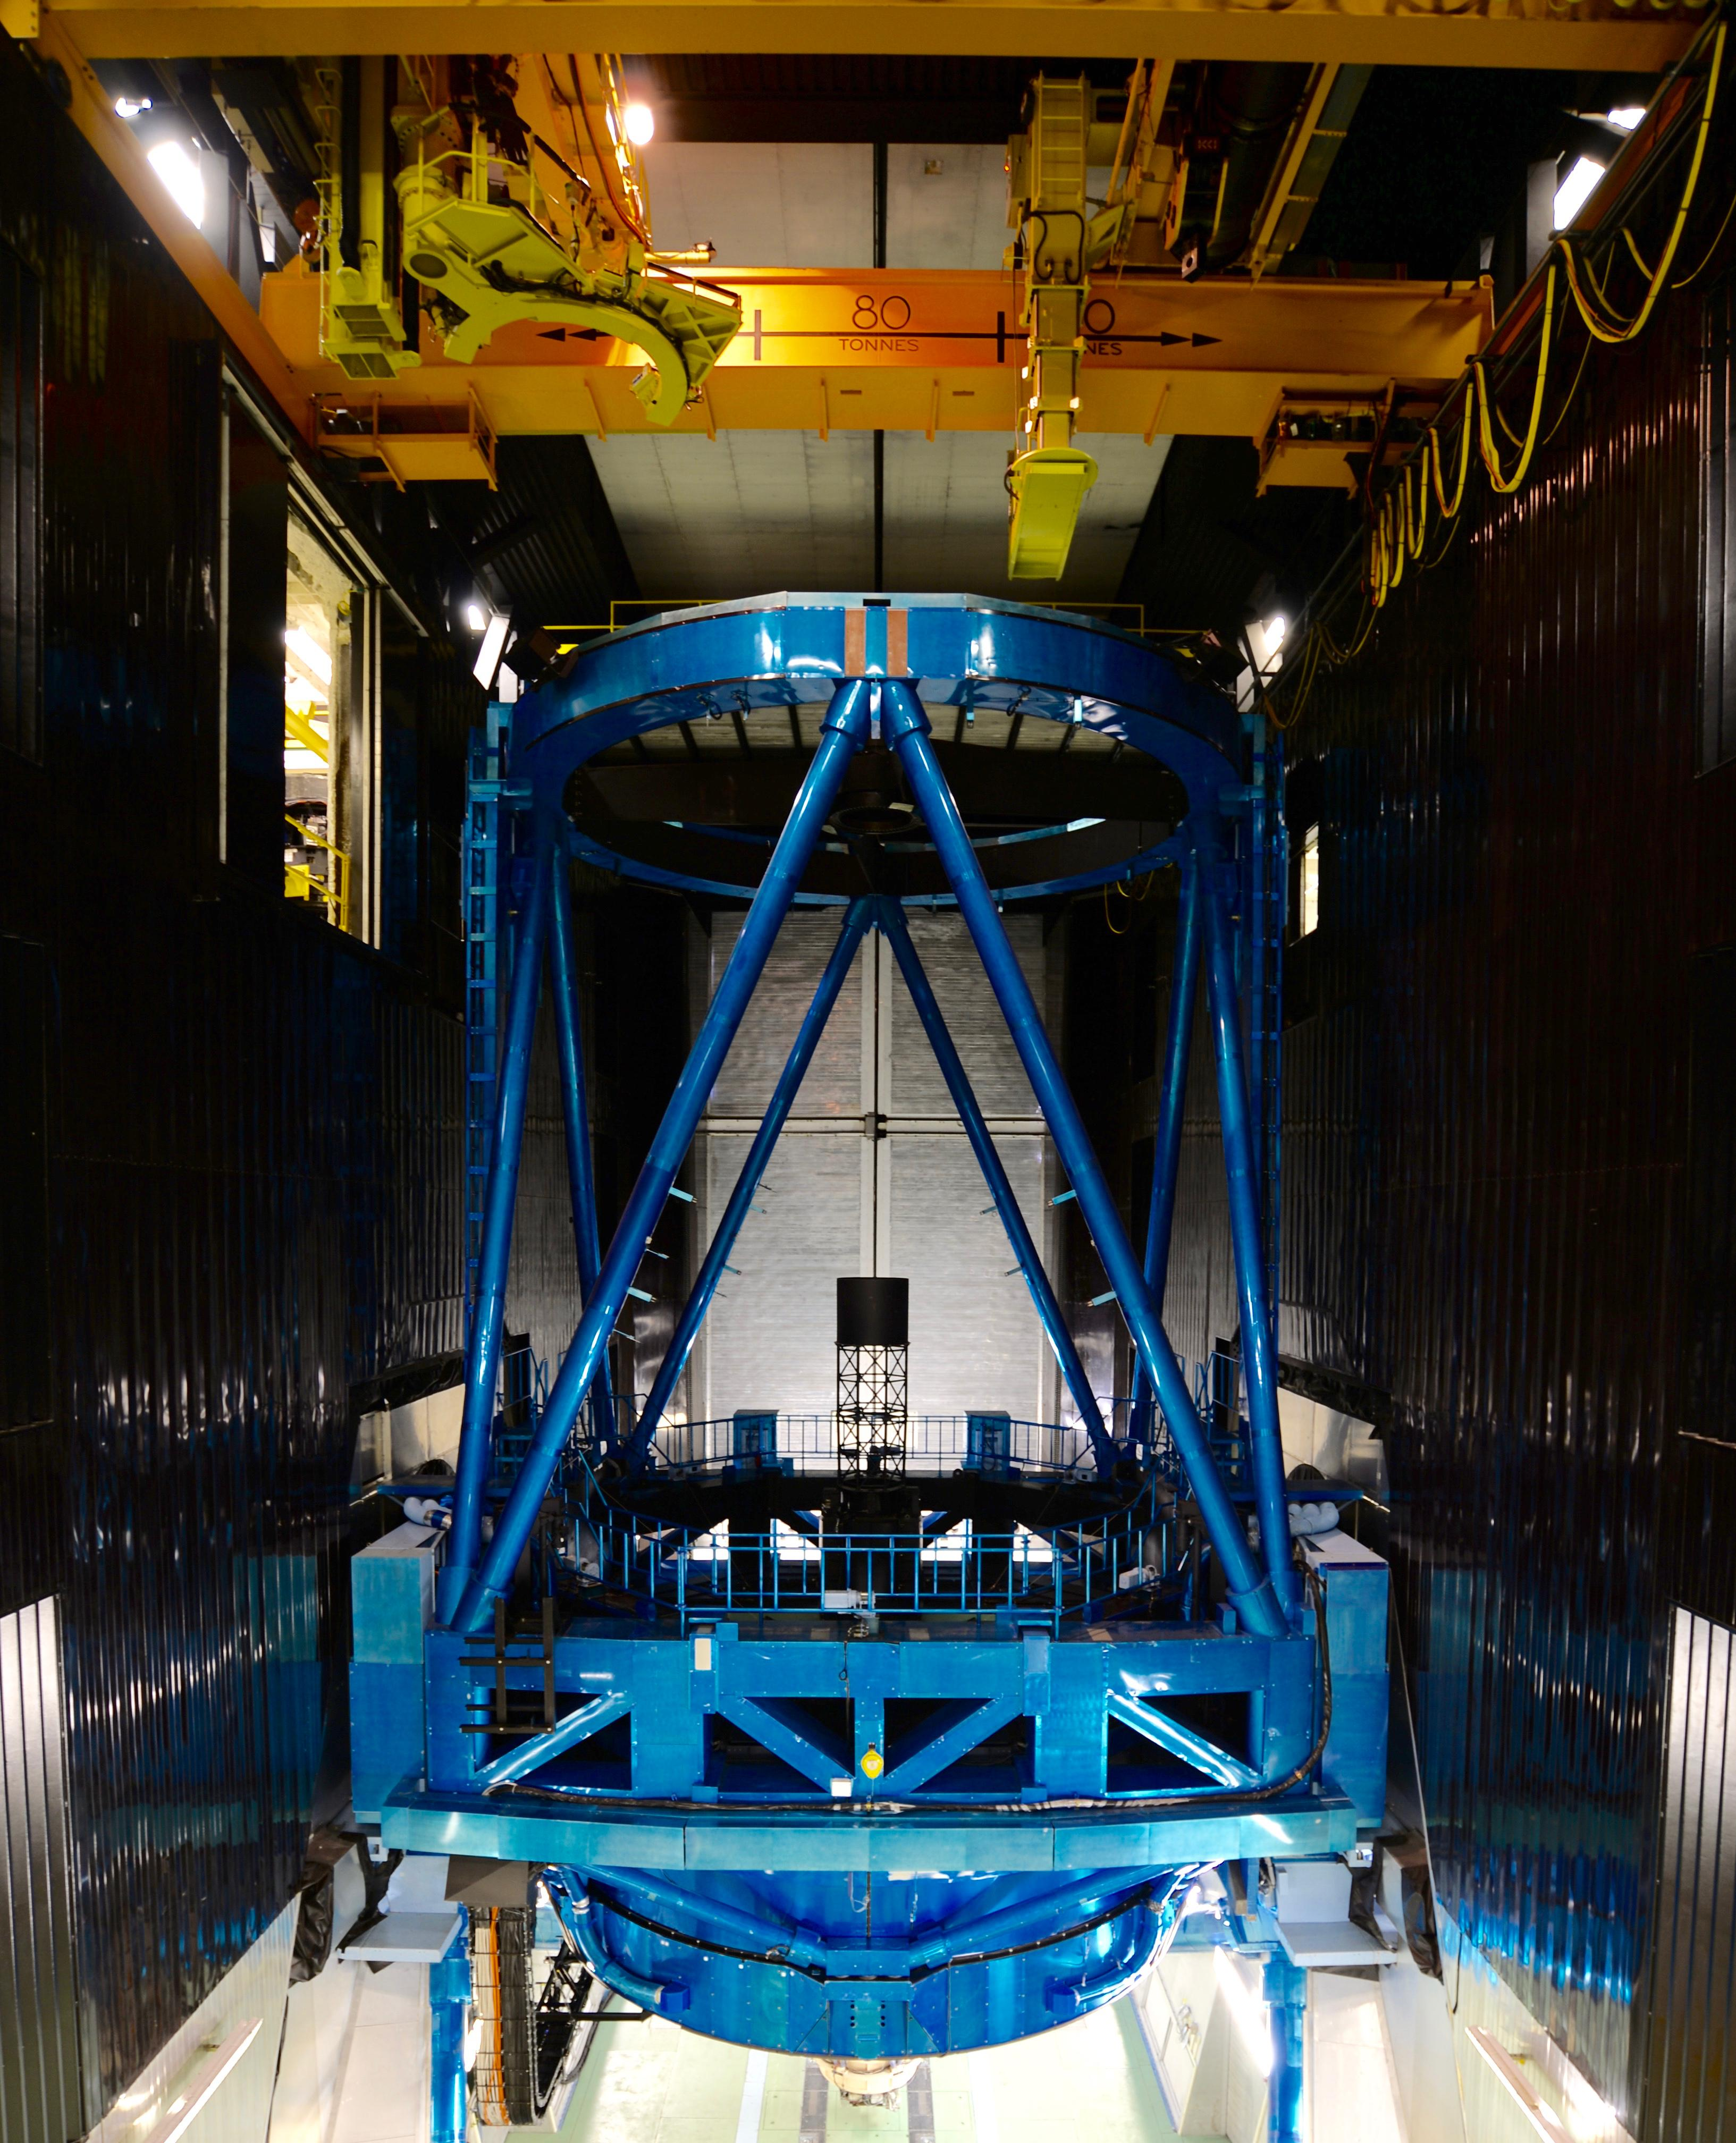 New Program Adds to the Visiting Opportunity of the Subaru Telescope Figure3